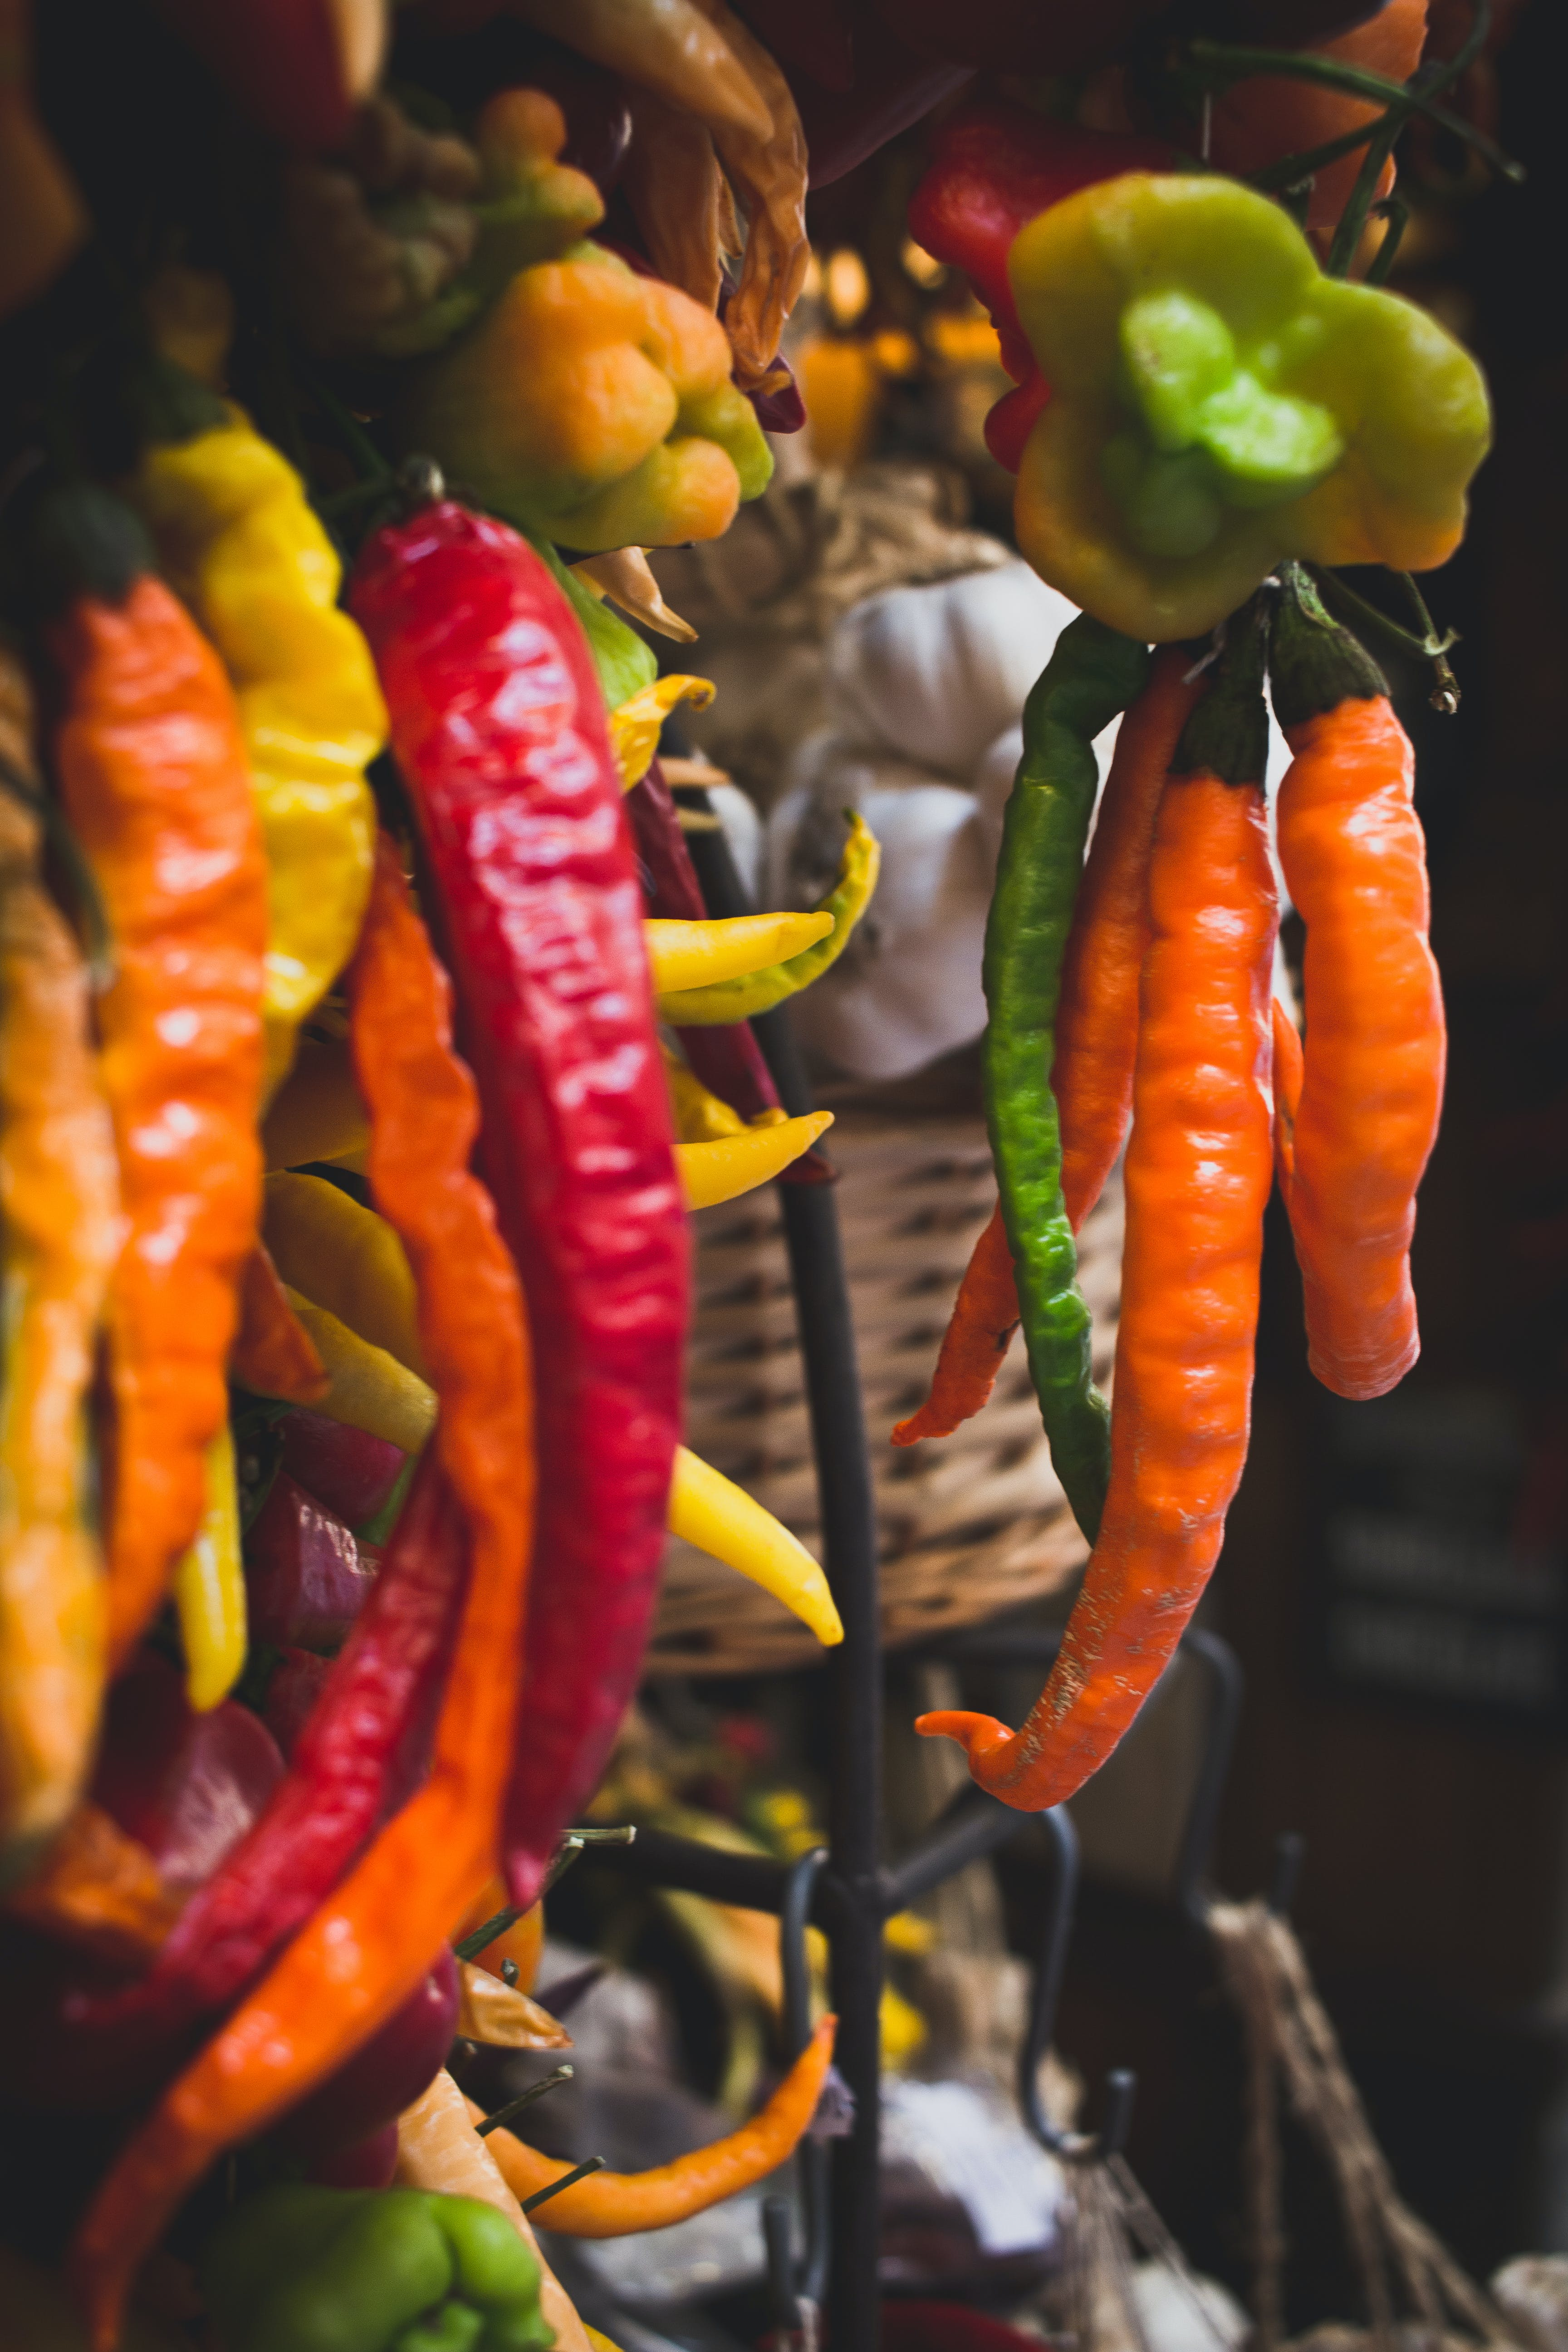 Free stock photo of chili peppers, farmers market, mallorca, market